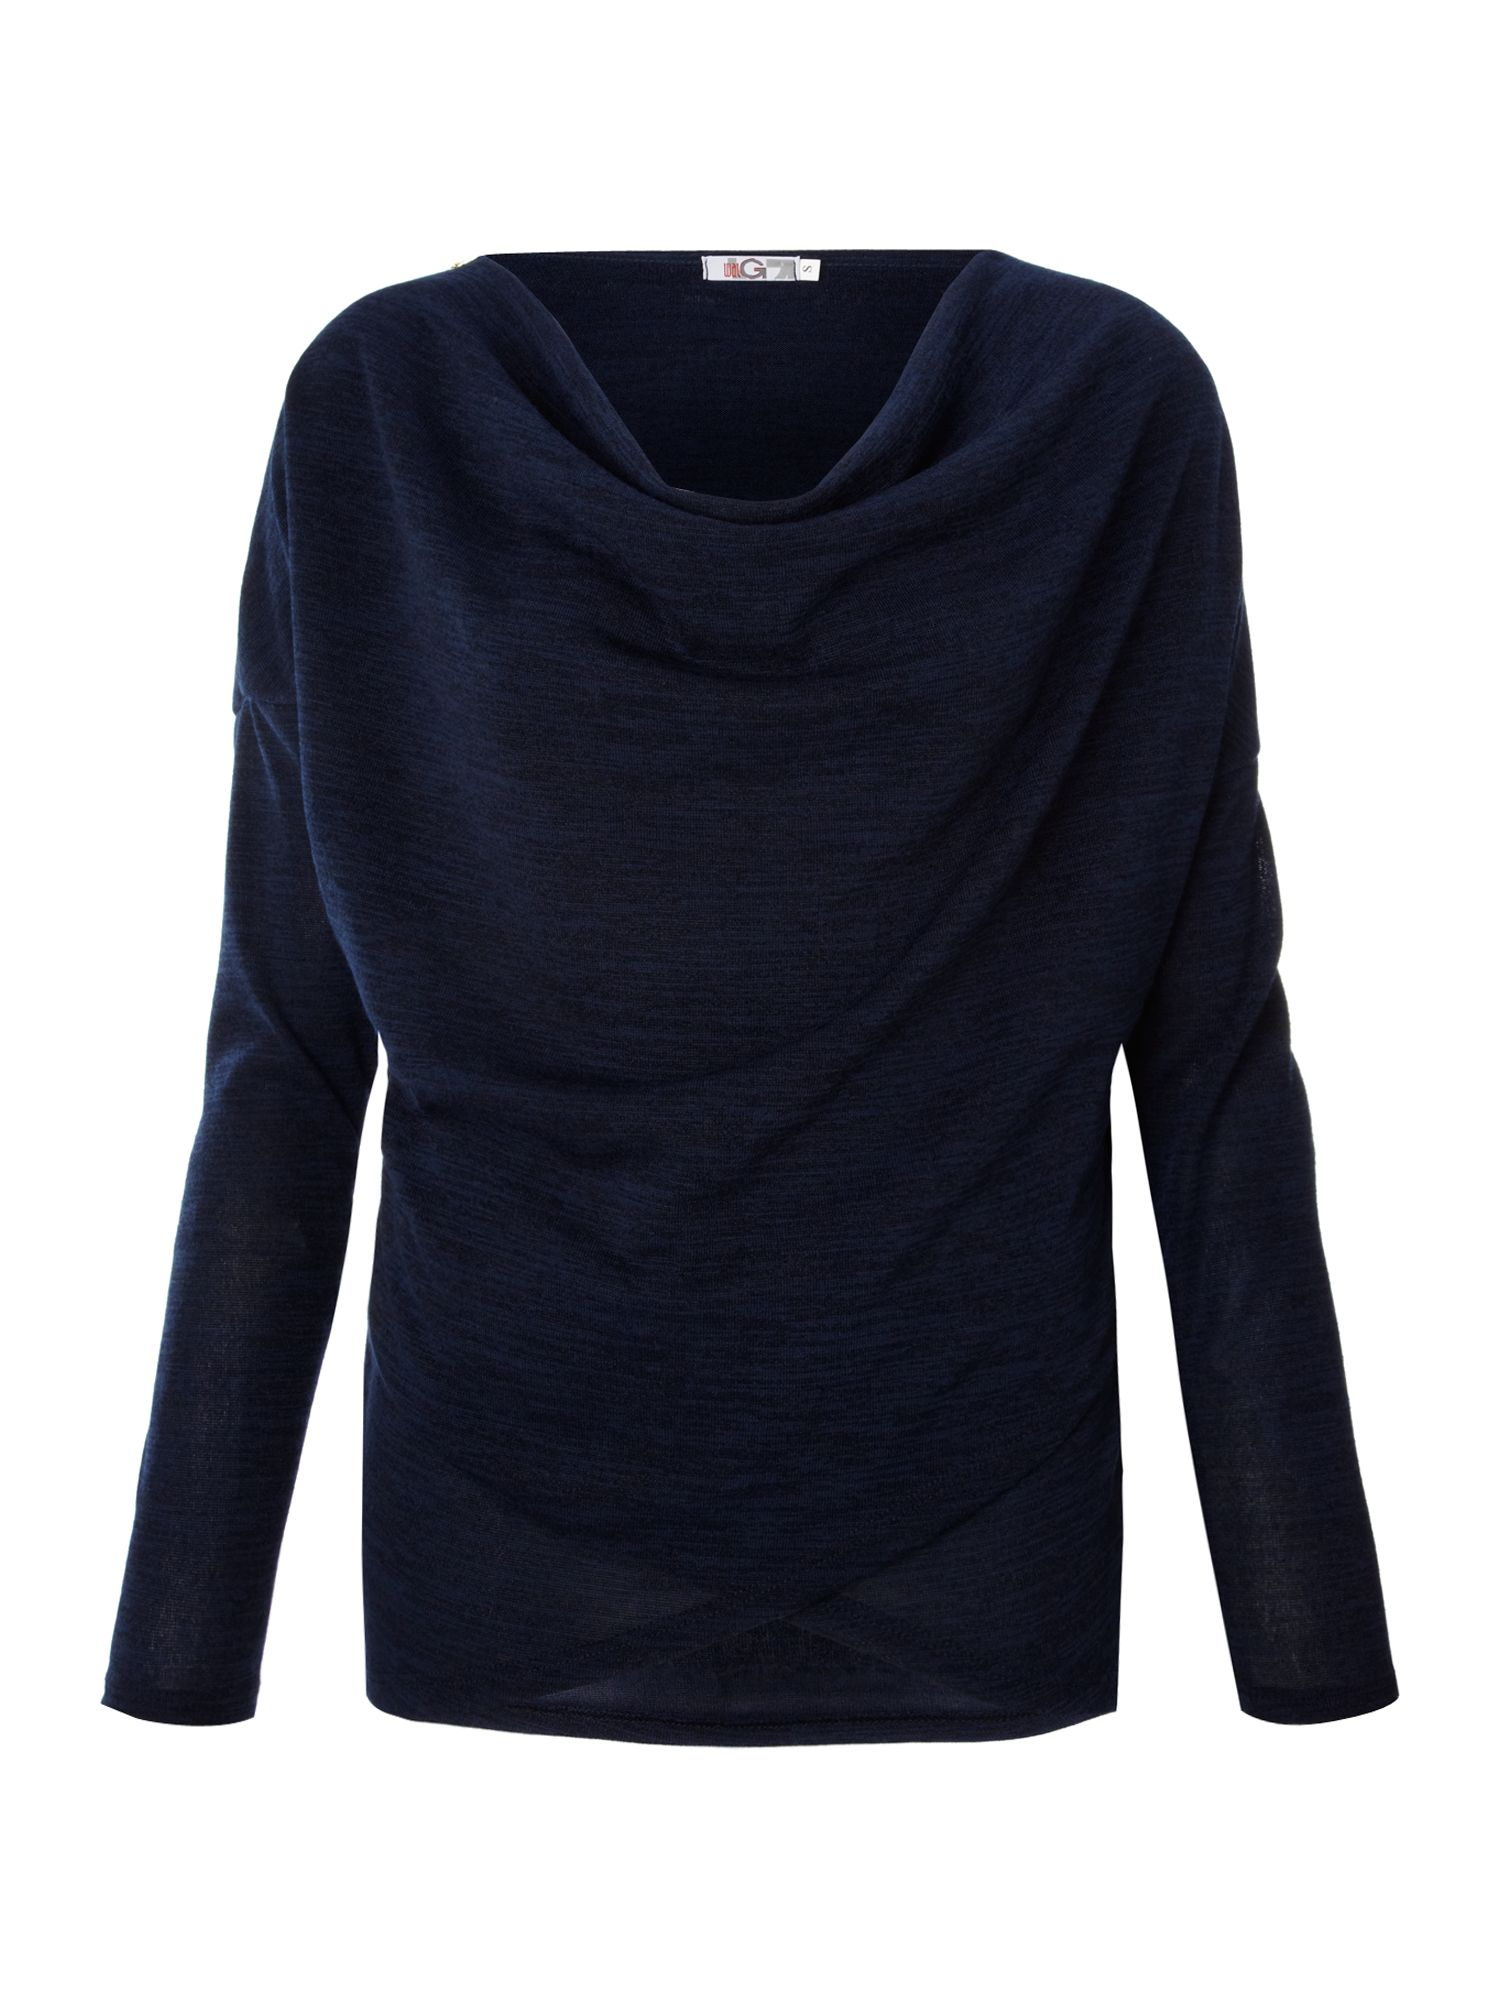 Cowl zip shoulder knit